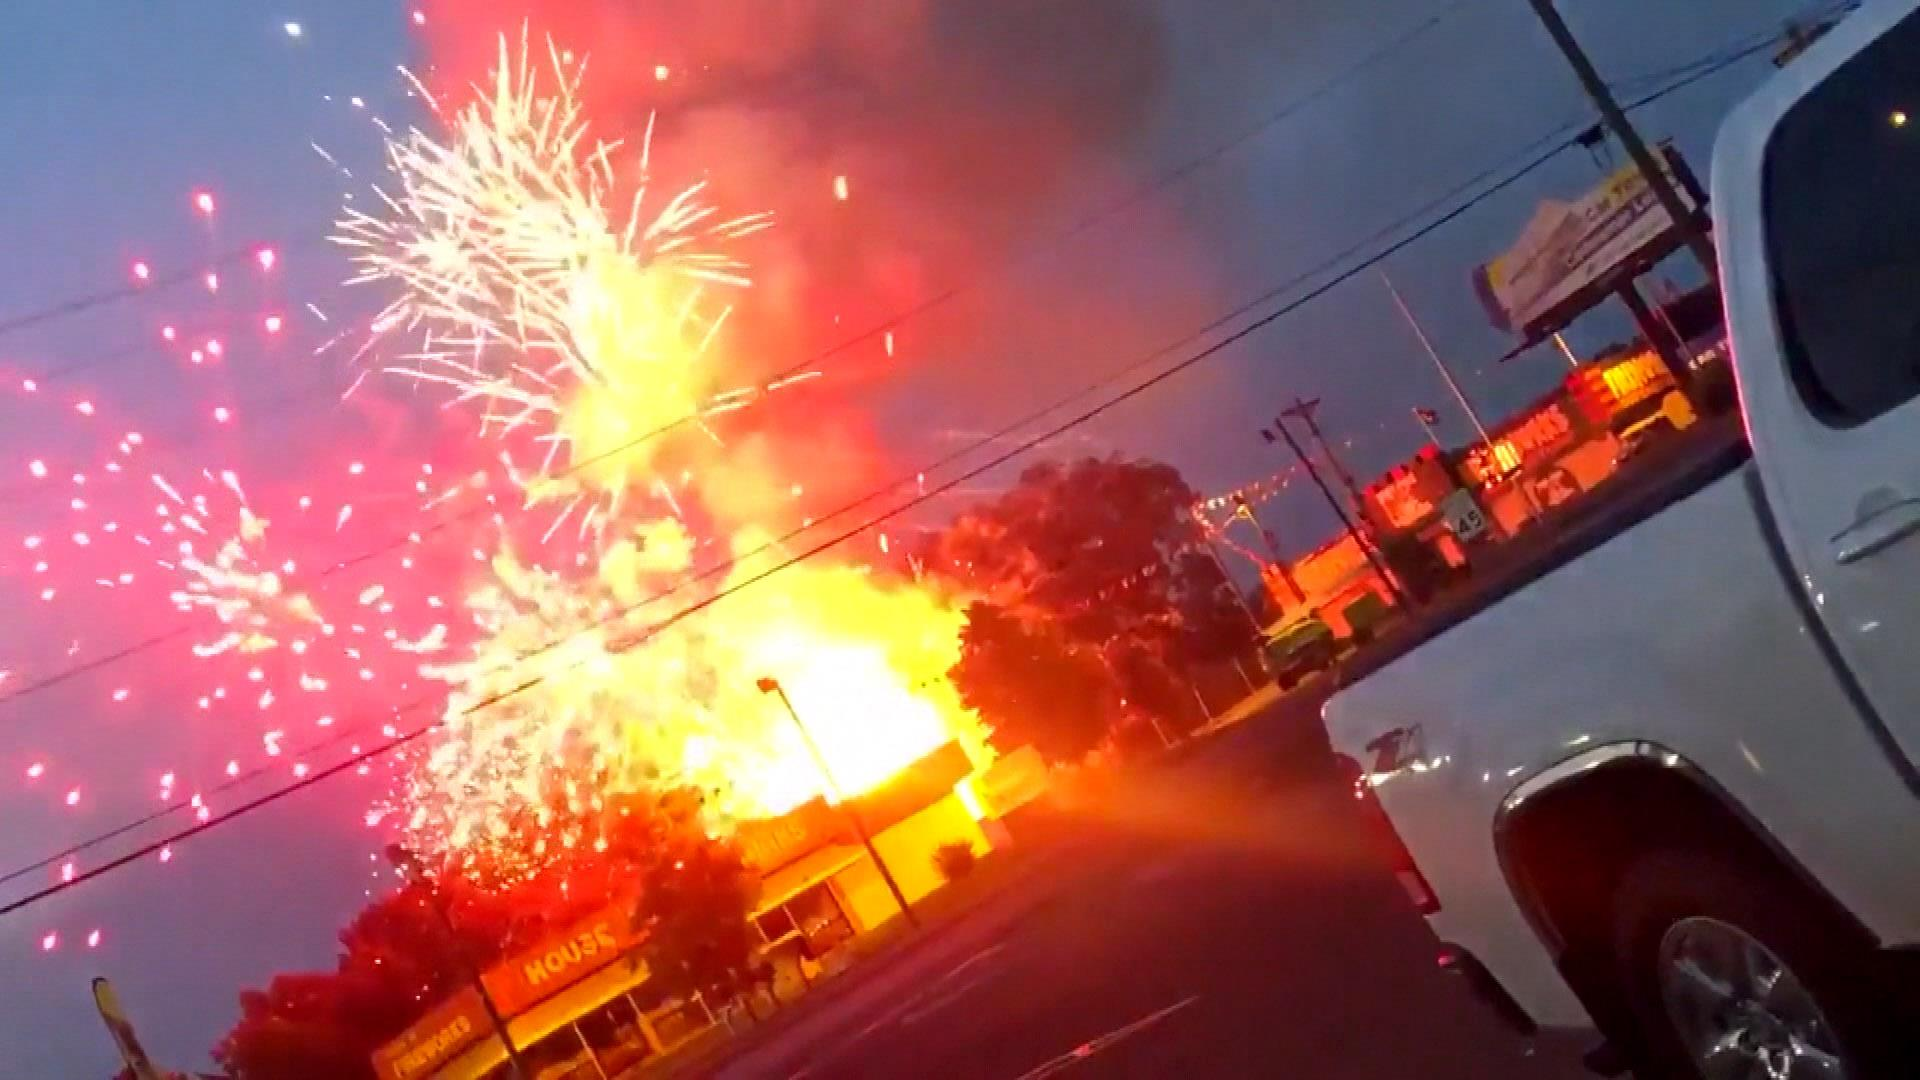 Accidental fireworks display caused by fire at fireworks store in South  Carolina